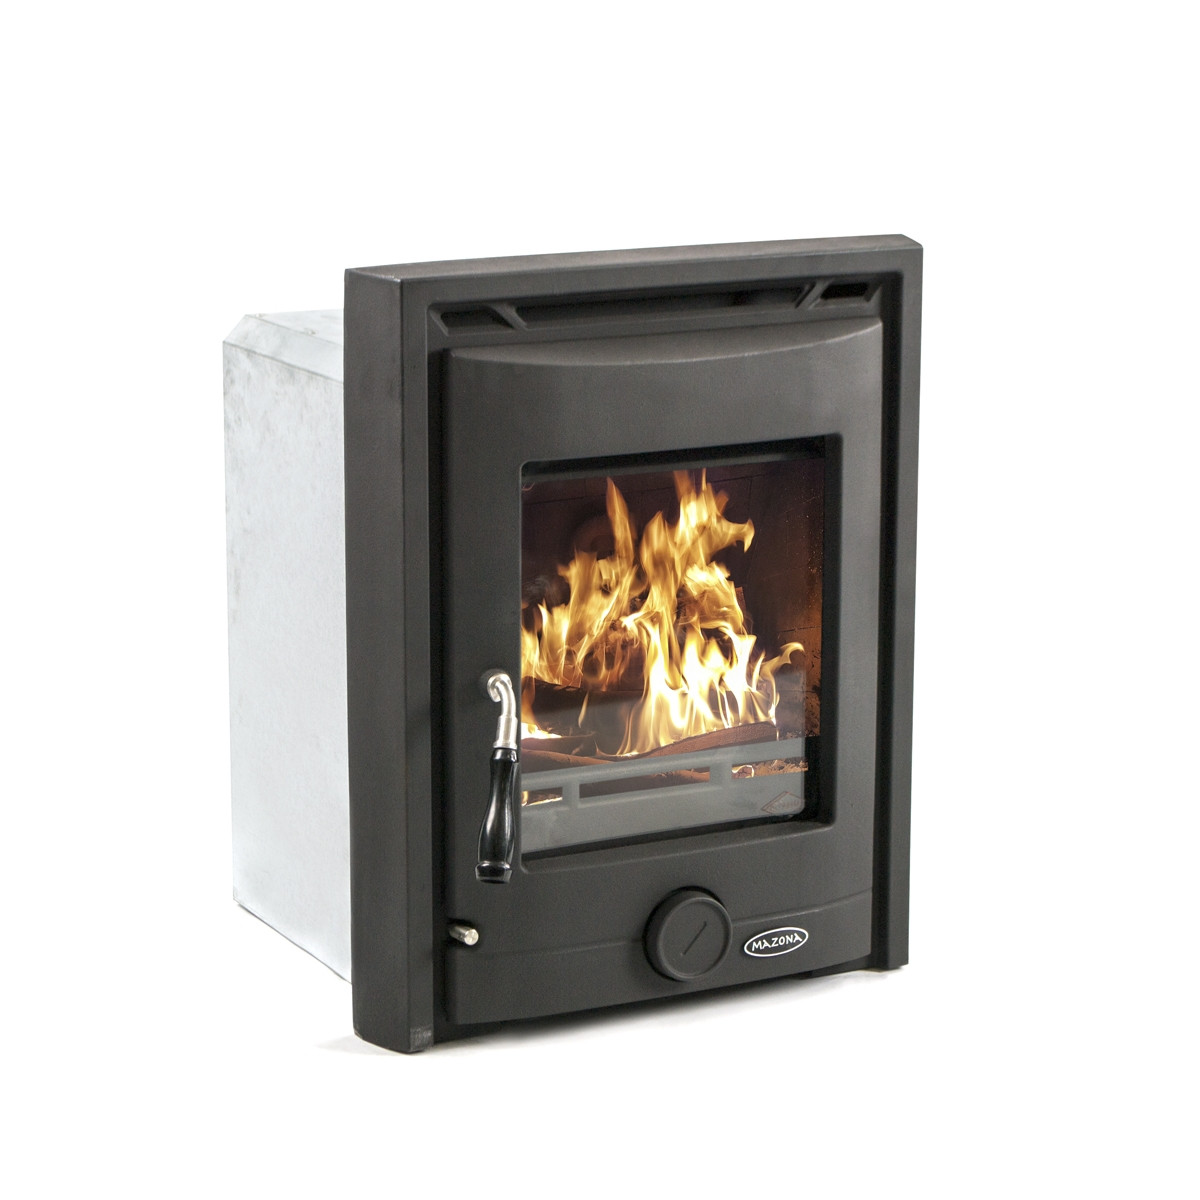 Mazona Portland 7 kW Multi Fuel Wood Burning Matt Black Inset Stove